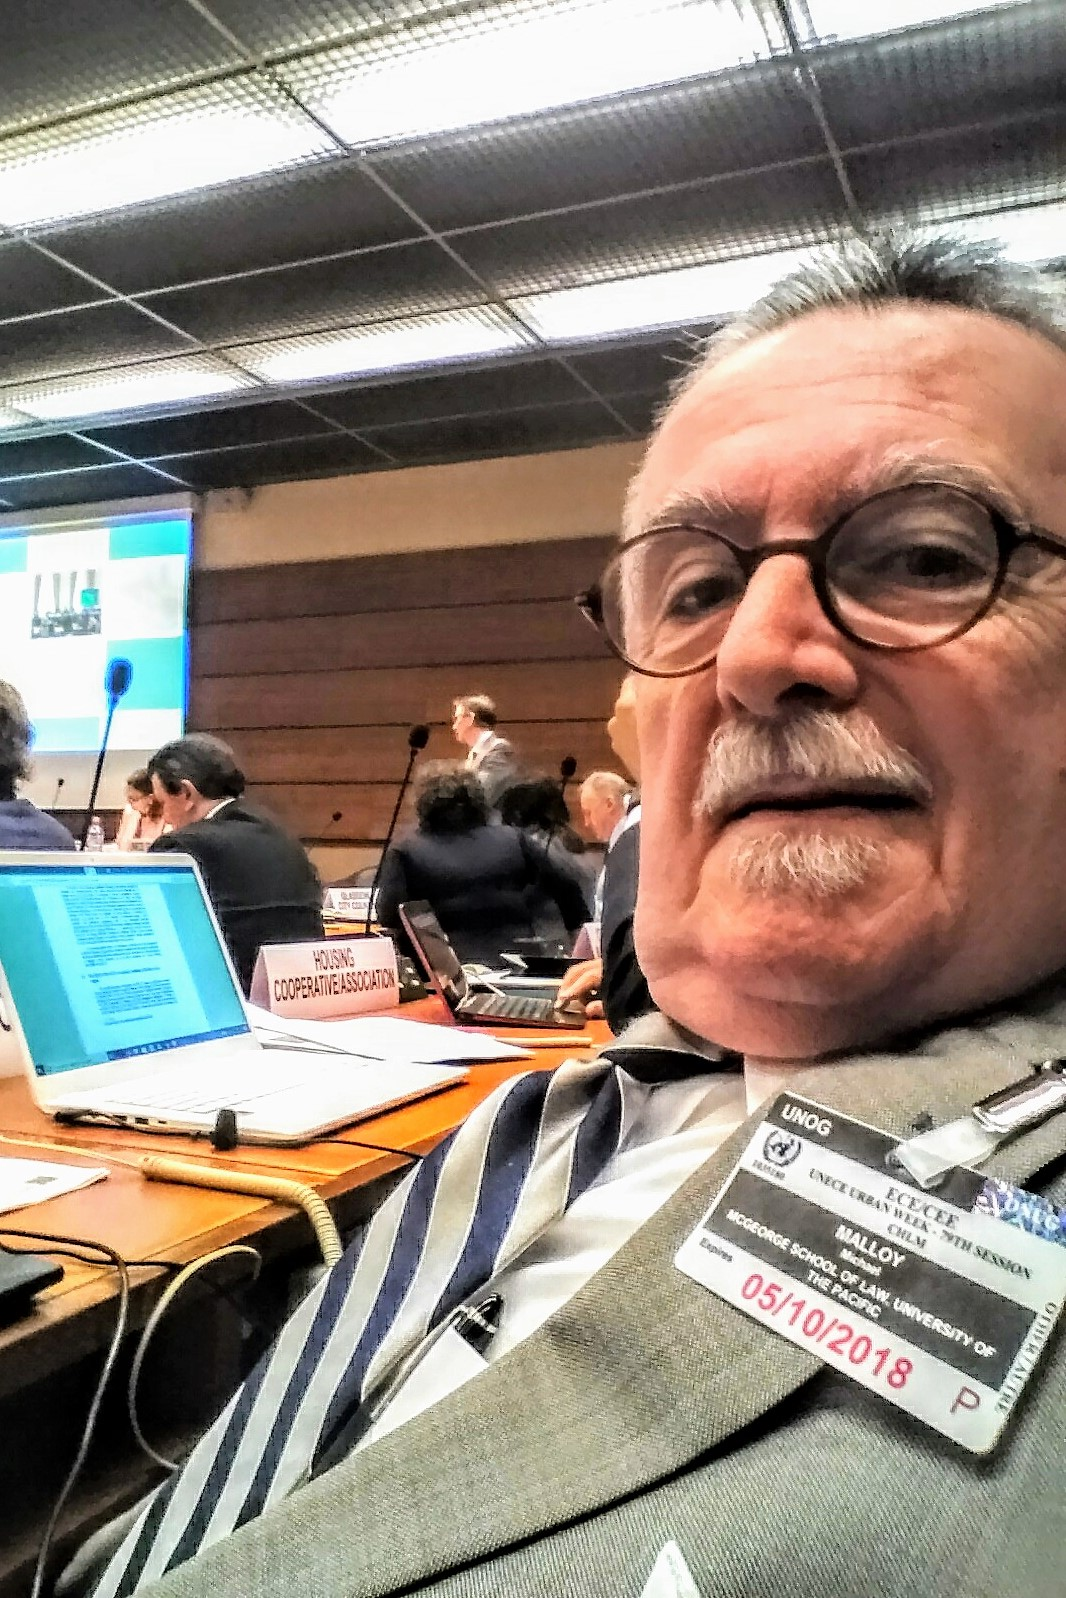 Michael Malloy takes a selfie at the UN